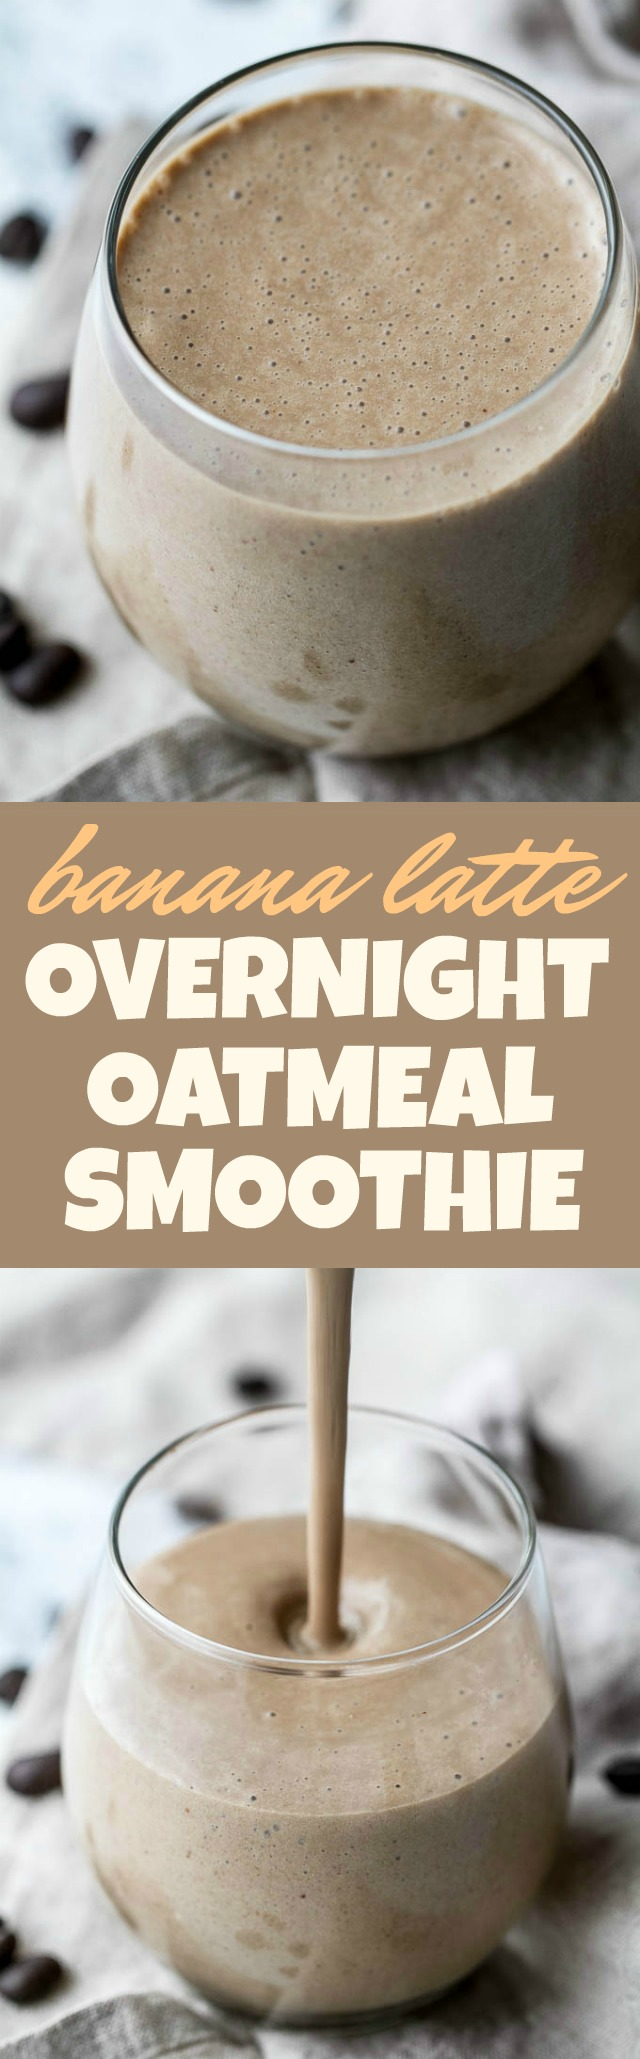 Coffee lovers rejoice! This creamy Banana Latte Overnight Oatmeal Smoothie combines that stick-to-your-ribs feeling of a bowl of oats with the silky smooth texture of a smoothie... plus your morning cup of coffee!! Vegan, gluten-free, and packed with plant-based protein and fiber, it makes a healthy and easy breakfast or afternoon snack! | runningwithspoons.com #recipe #coffee #smoothie #vegan